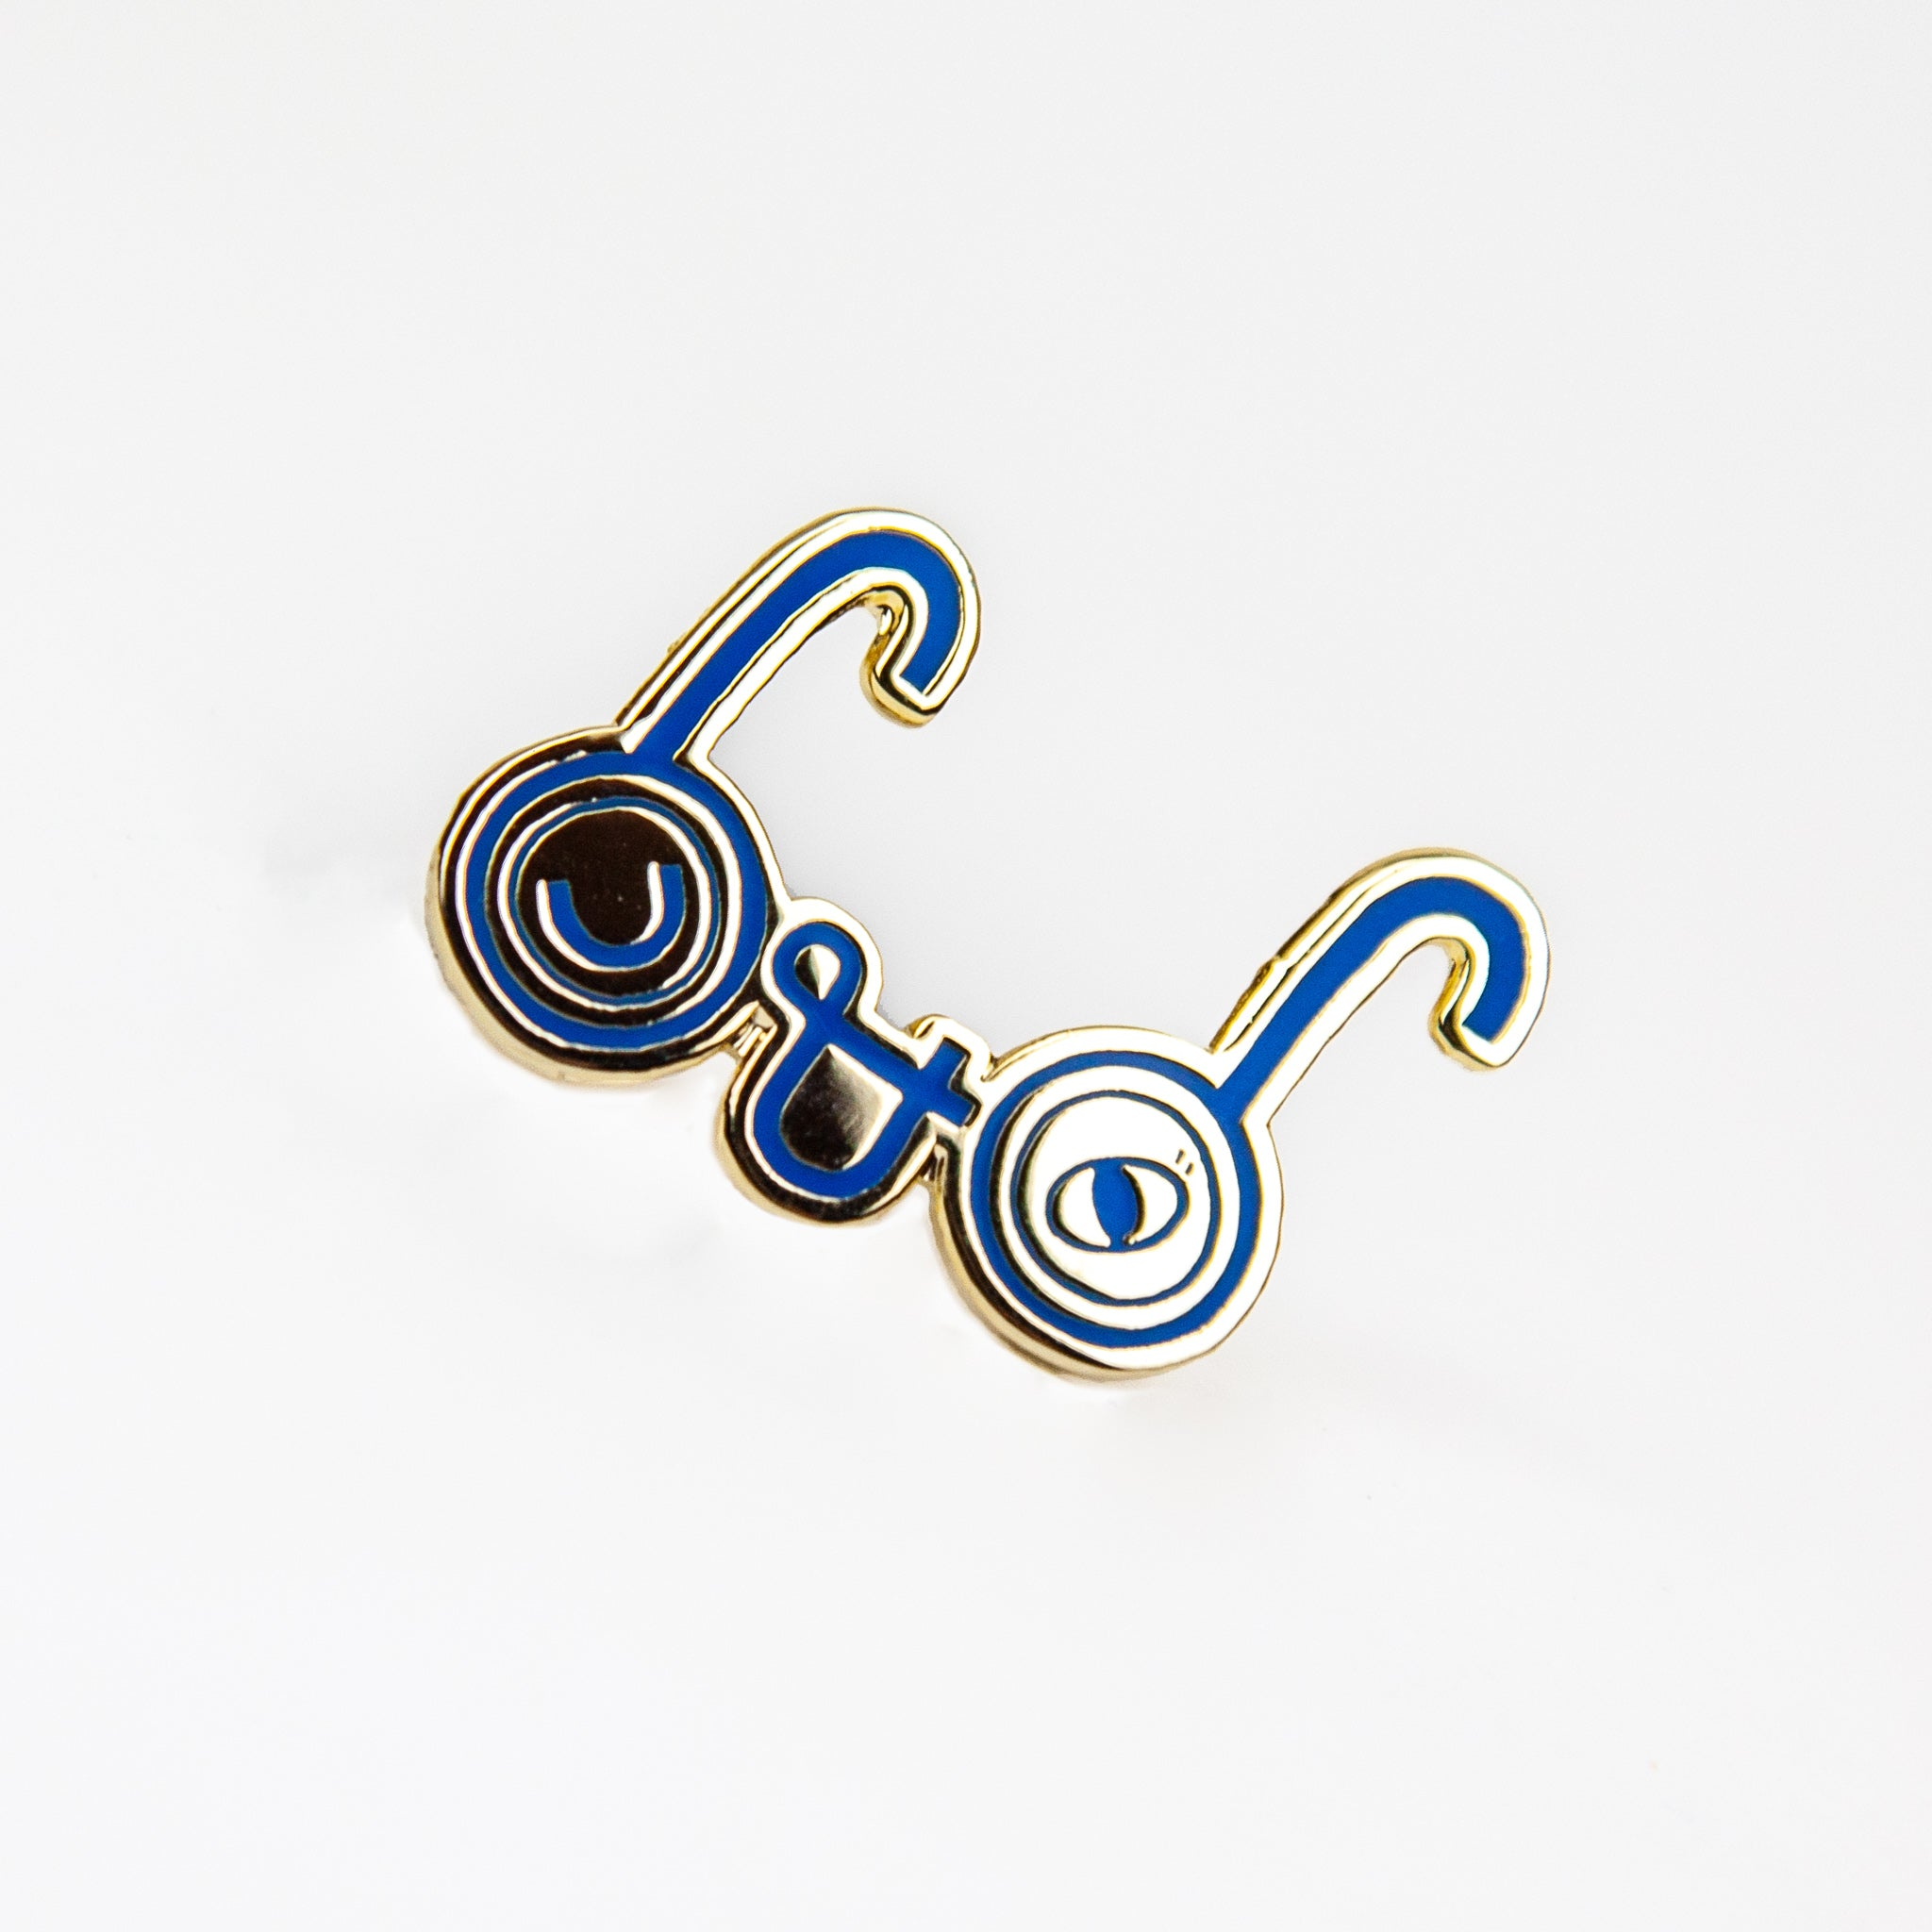 U & I Pin Badge